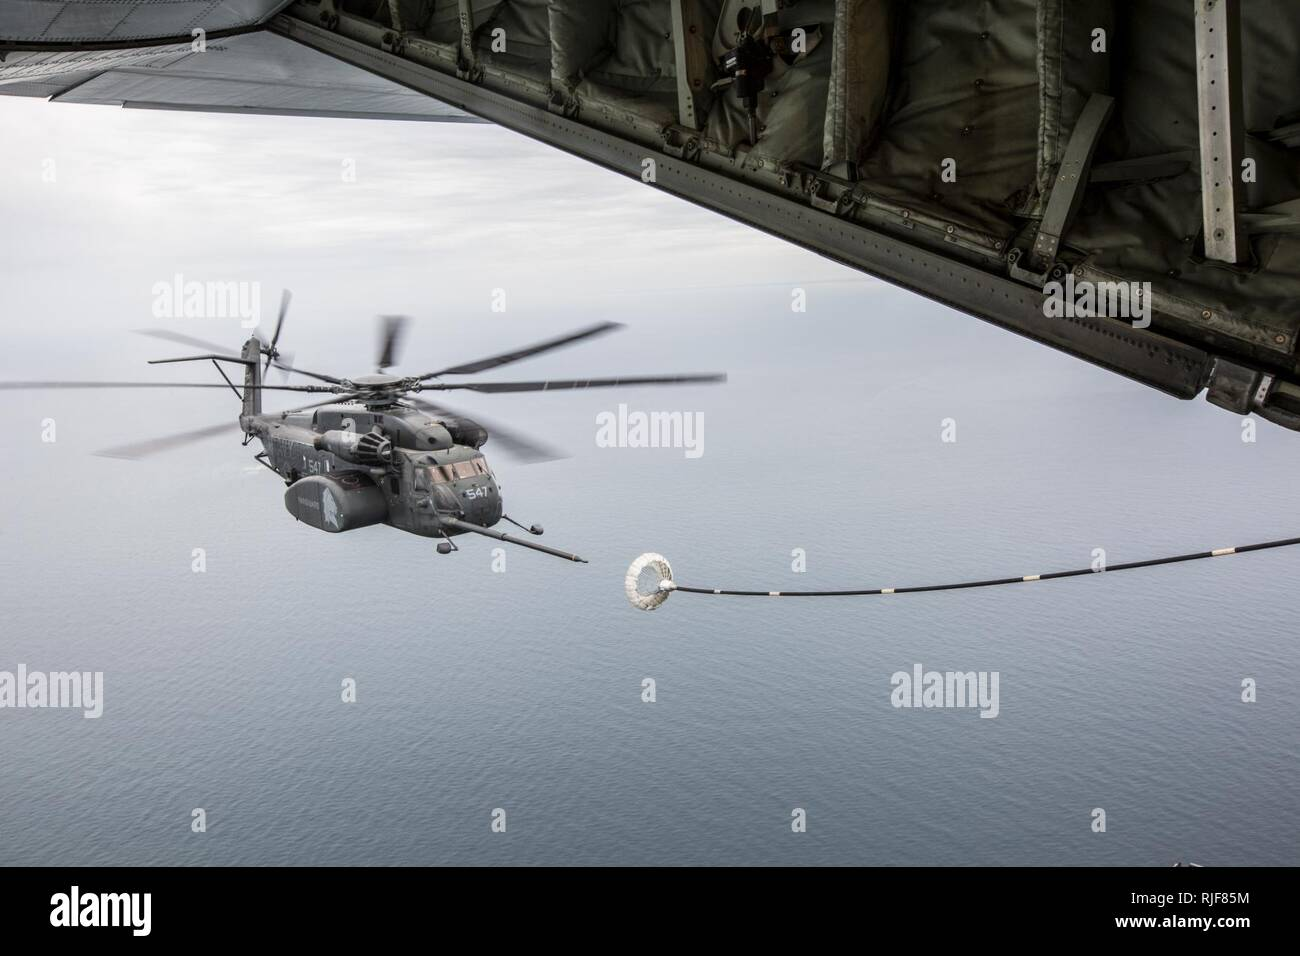 CHERRY POINT, N.C. (June 21, 2017) An  MH-53E Sea Dragon assigned to the 'Vanguards' of Helicopter Mine Countermeasure Squadron (HM) 14 conducts an aerial refuel off the coast of N.C. Marine Aerial Refueler Transport Squadron 252 performed the air to air refueling exercises with HM-14 in a joint effort to improve interservice readiness. - Stock Image